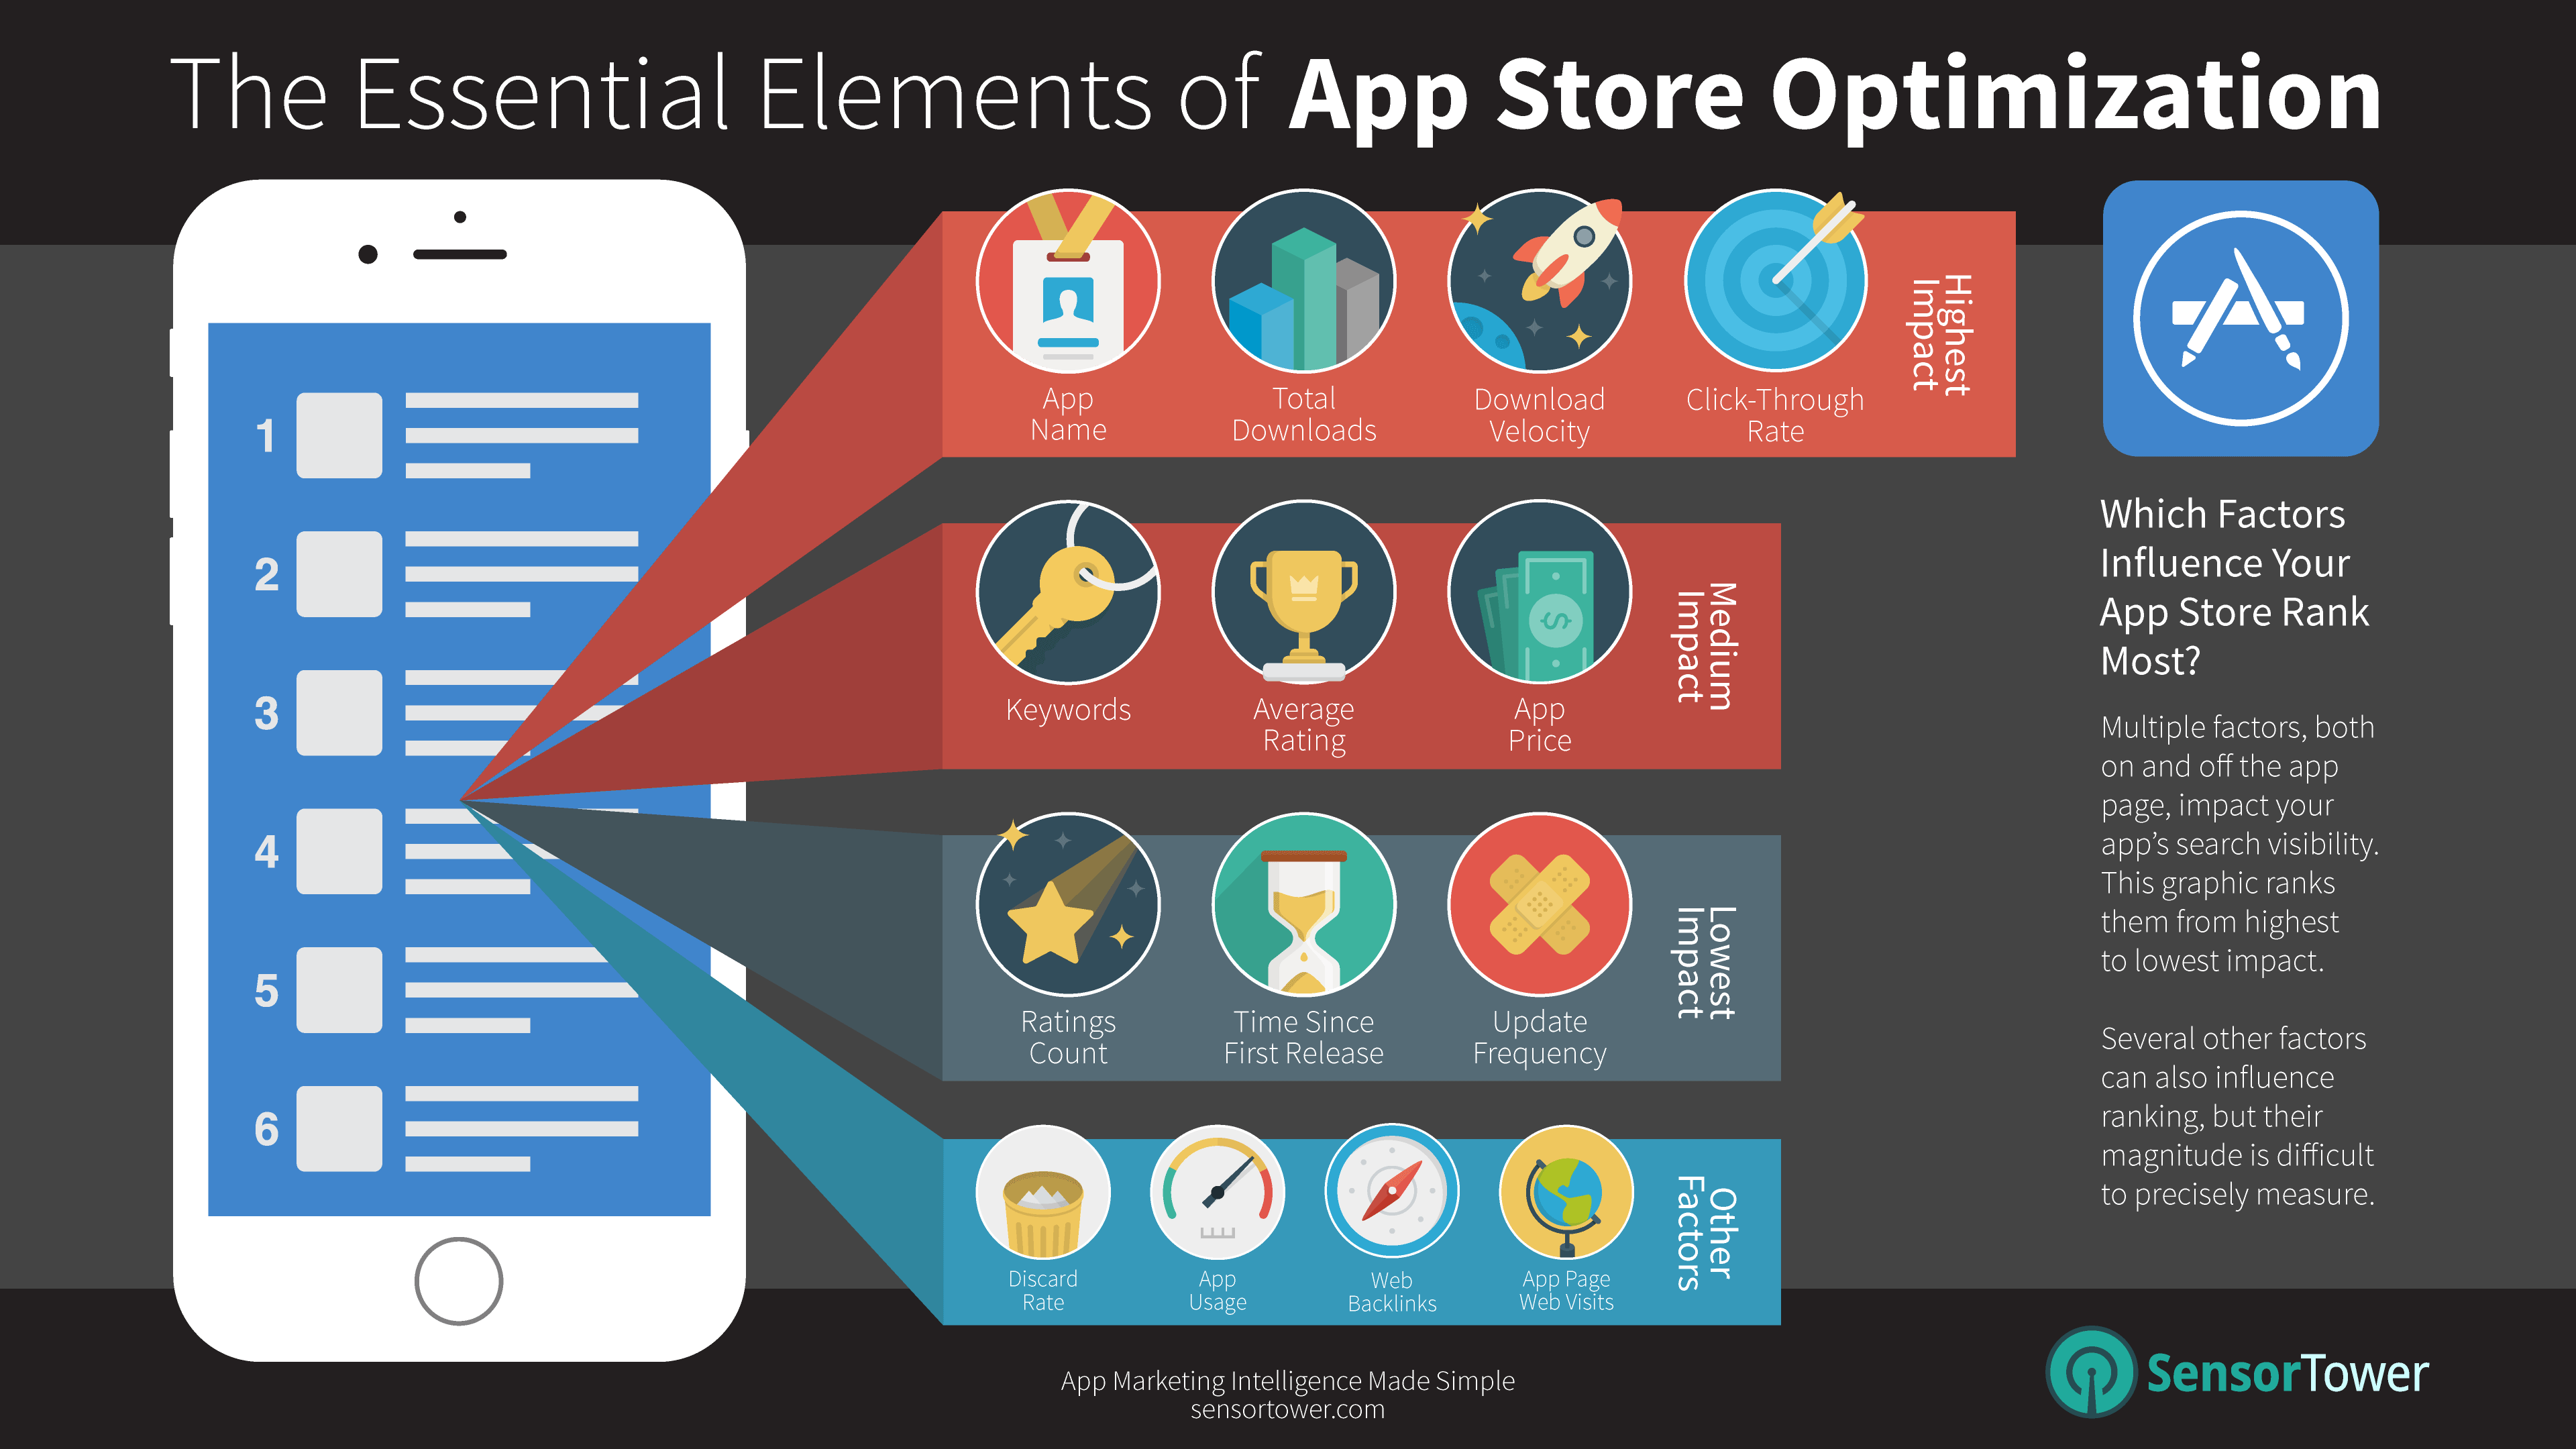 Create infographic apps